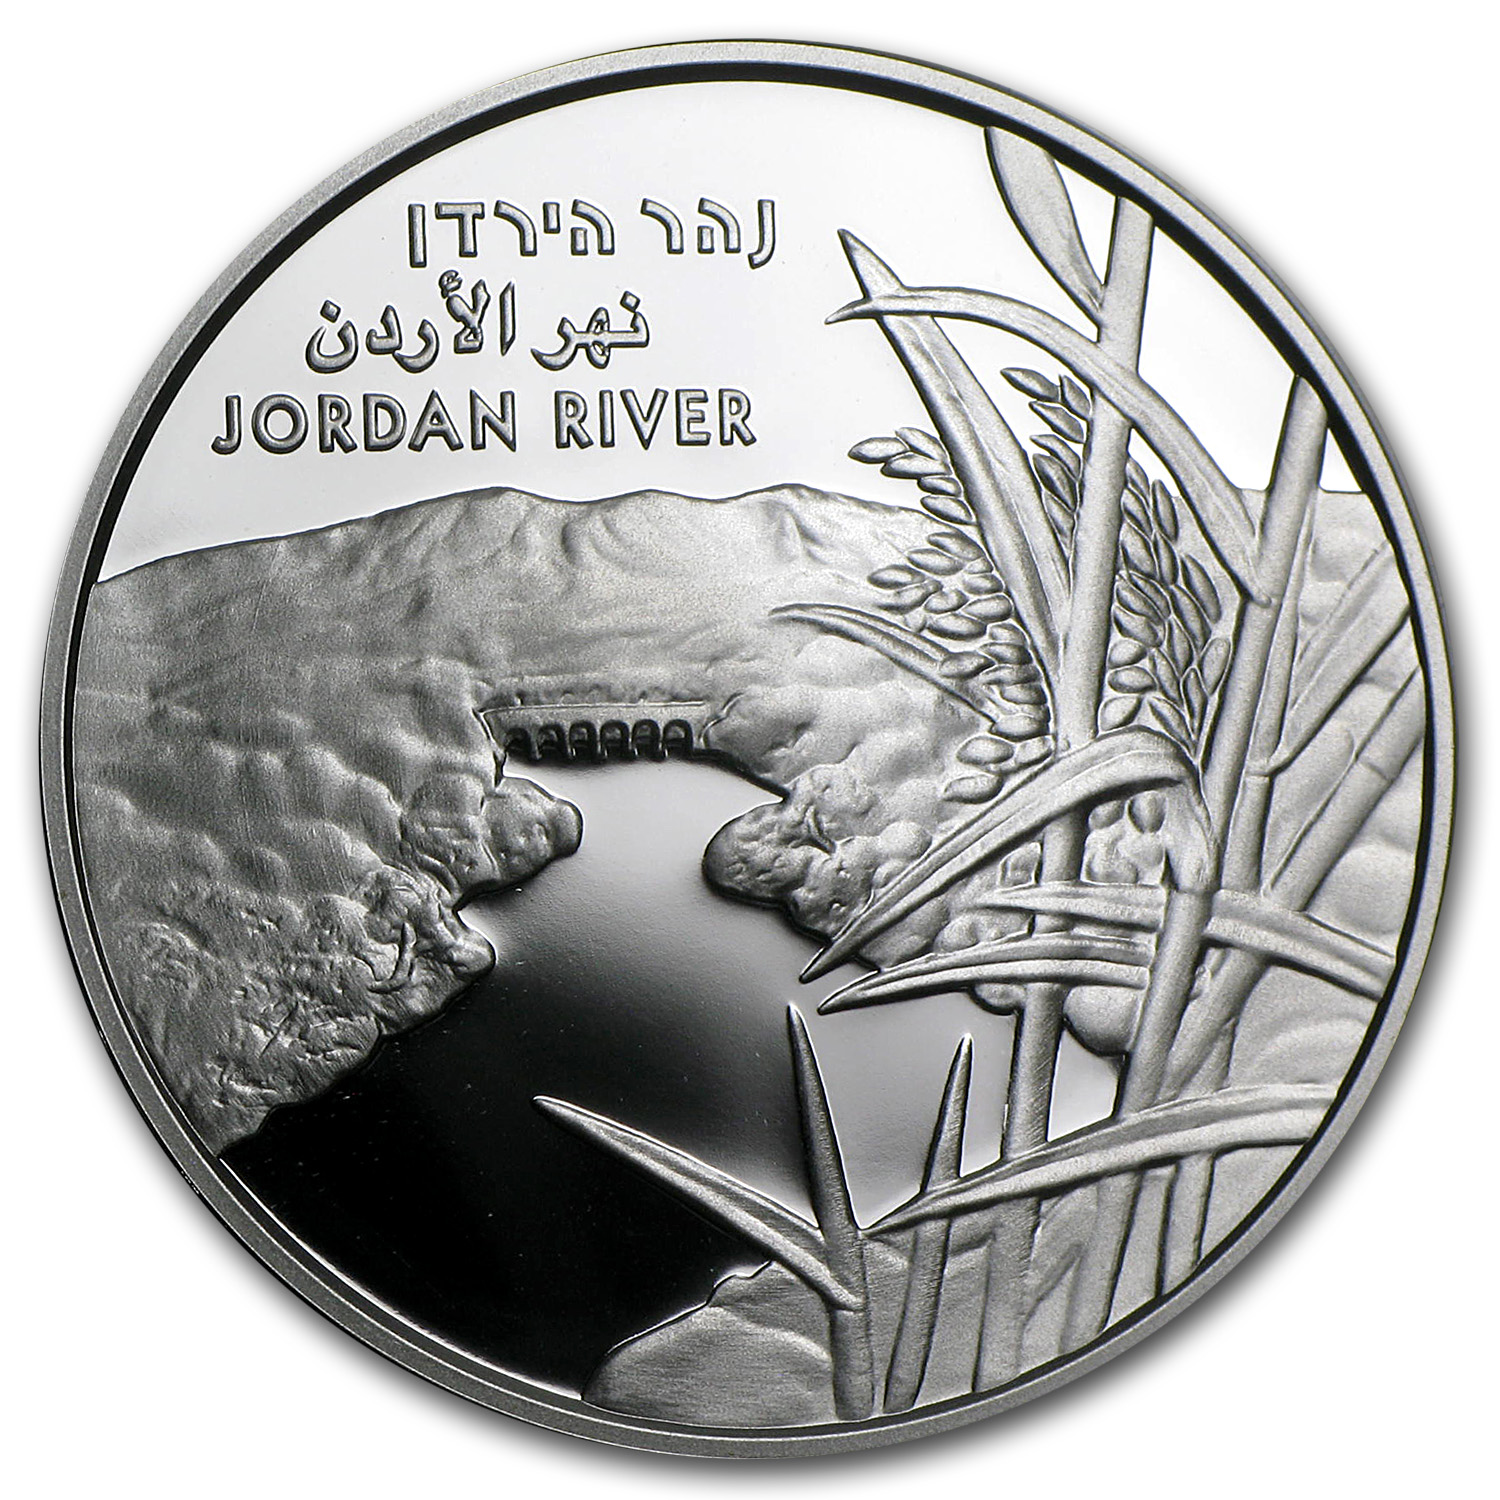 2013 Israel The Jordan River Proof-Like Silver 1 NIS Coin